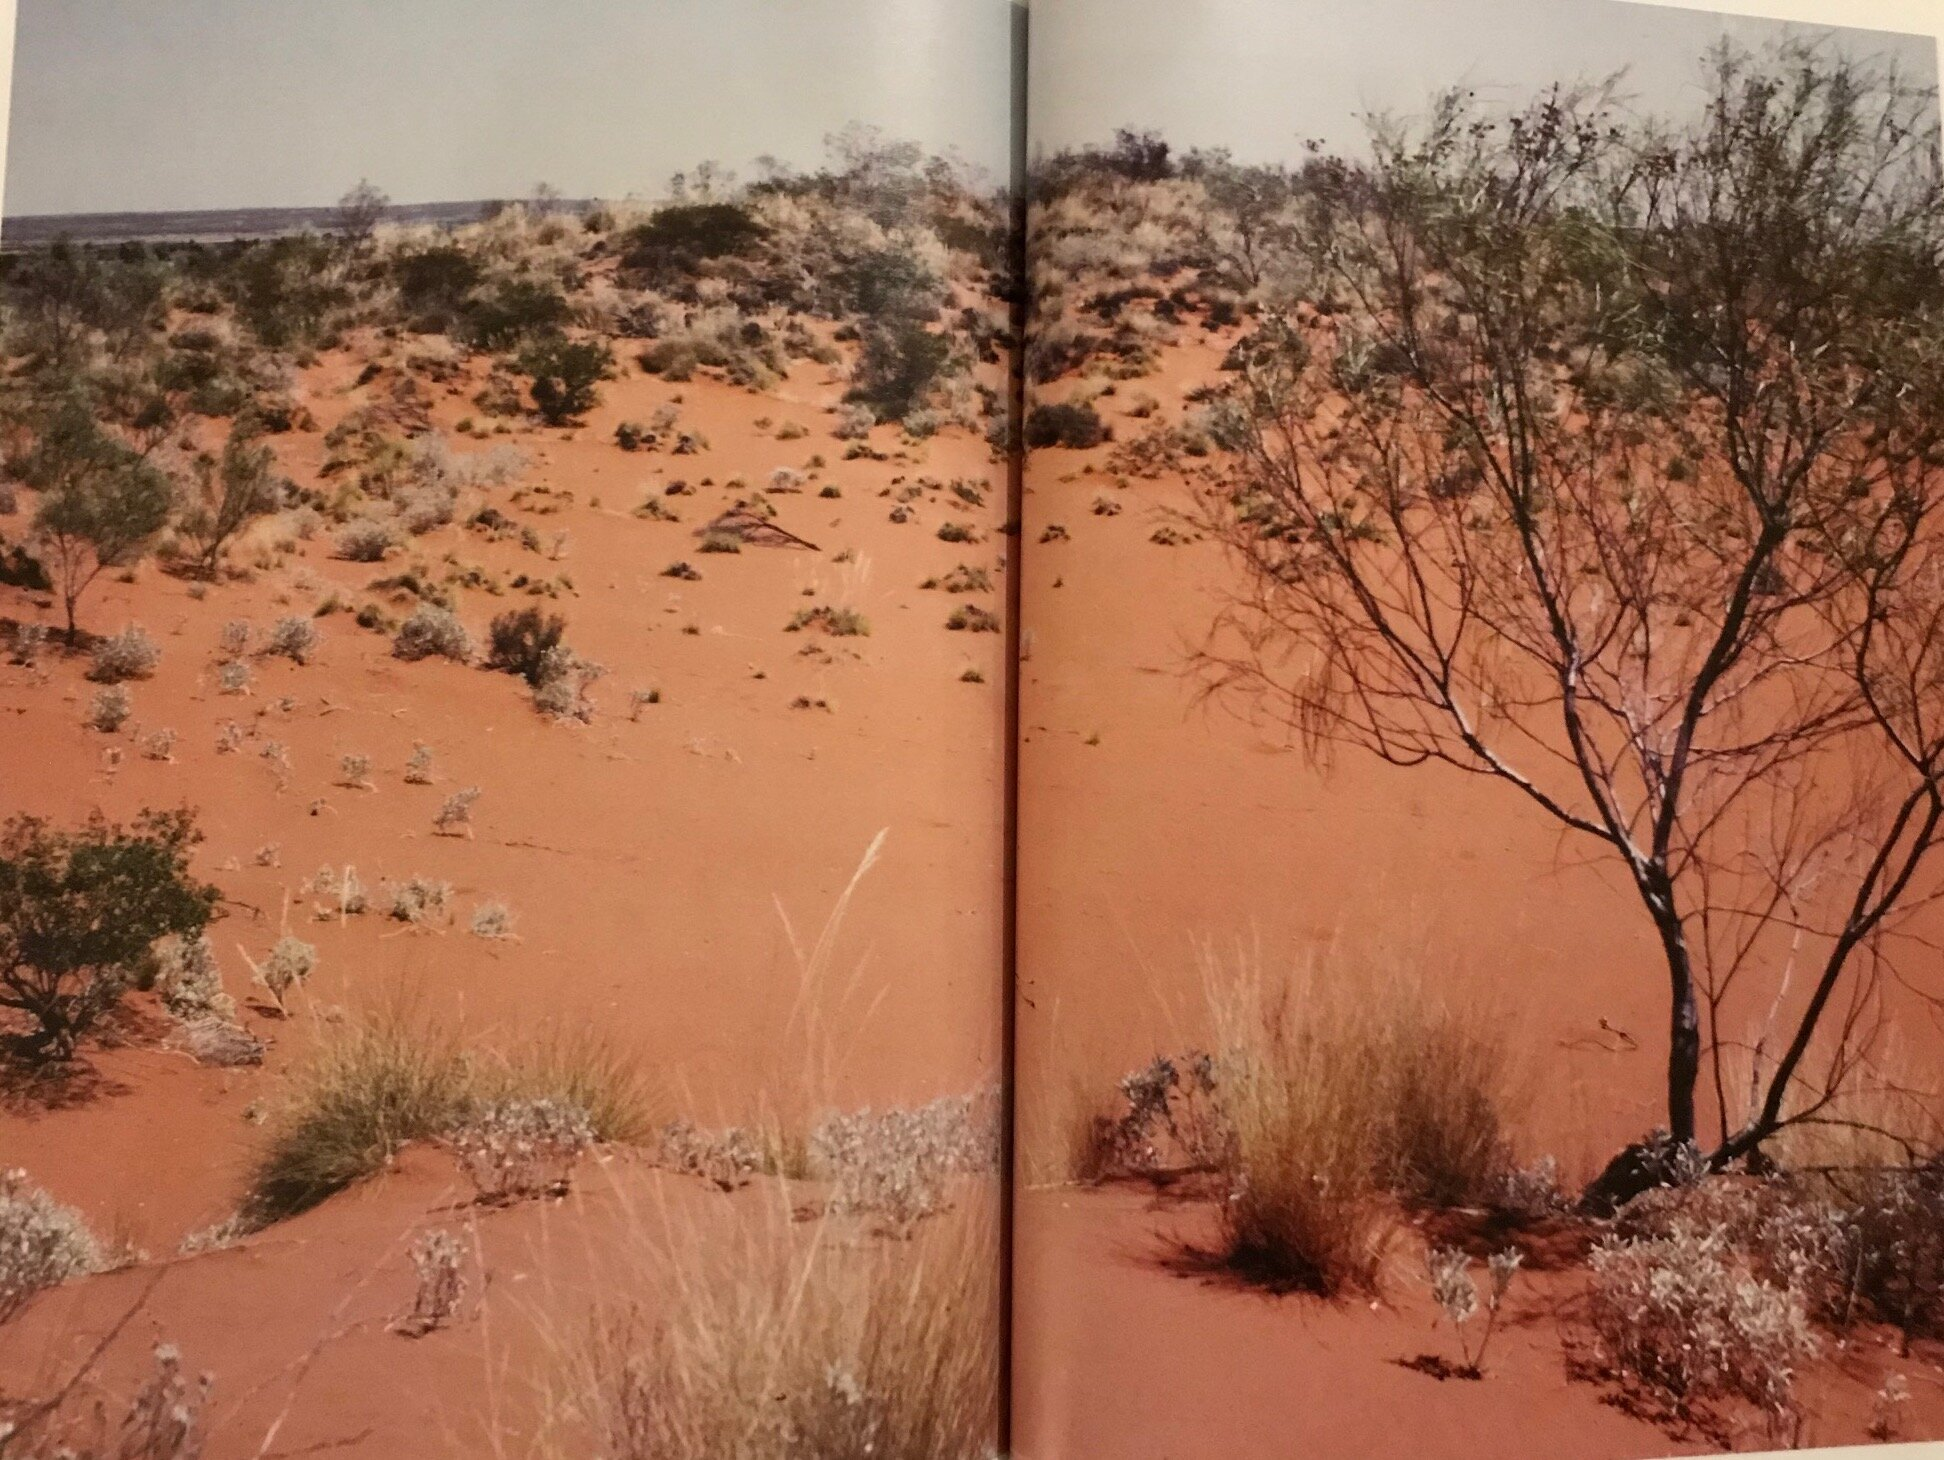 - Jukuna's country - the Great Sandy Desert in NW Australia - which is a tough environment but nevertheless, Jukuna and her family were able to survive here as hunter gatherers. It is not 'agricultural' country.